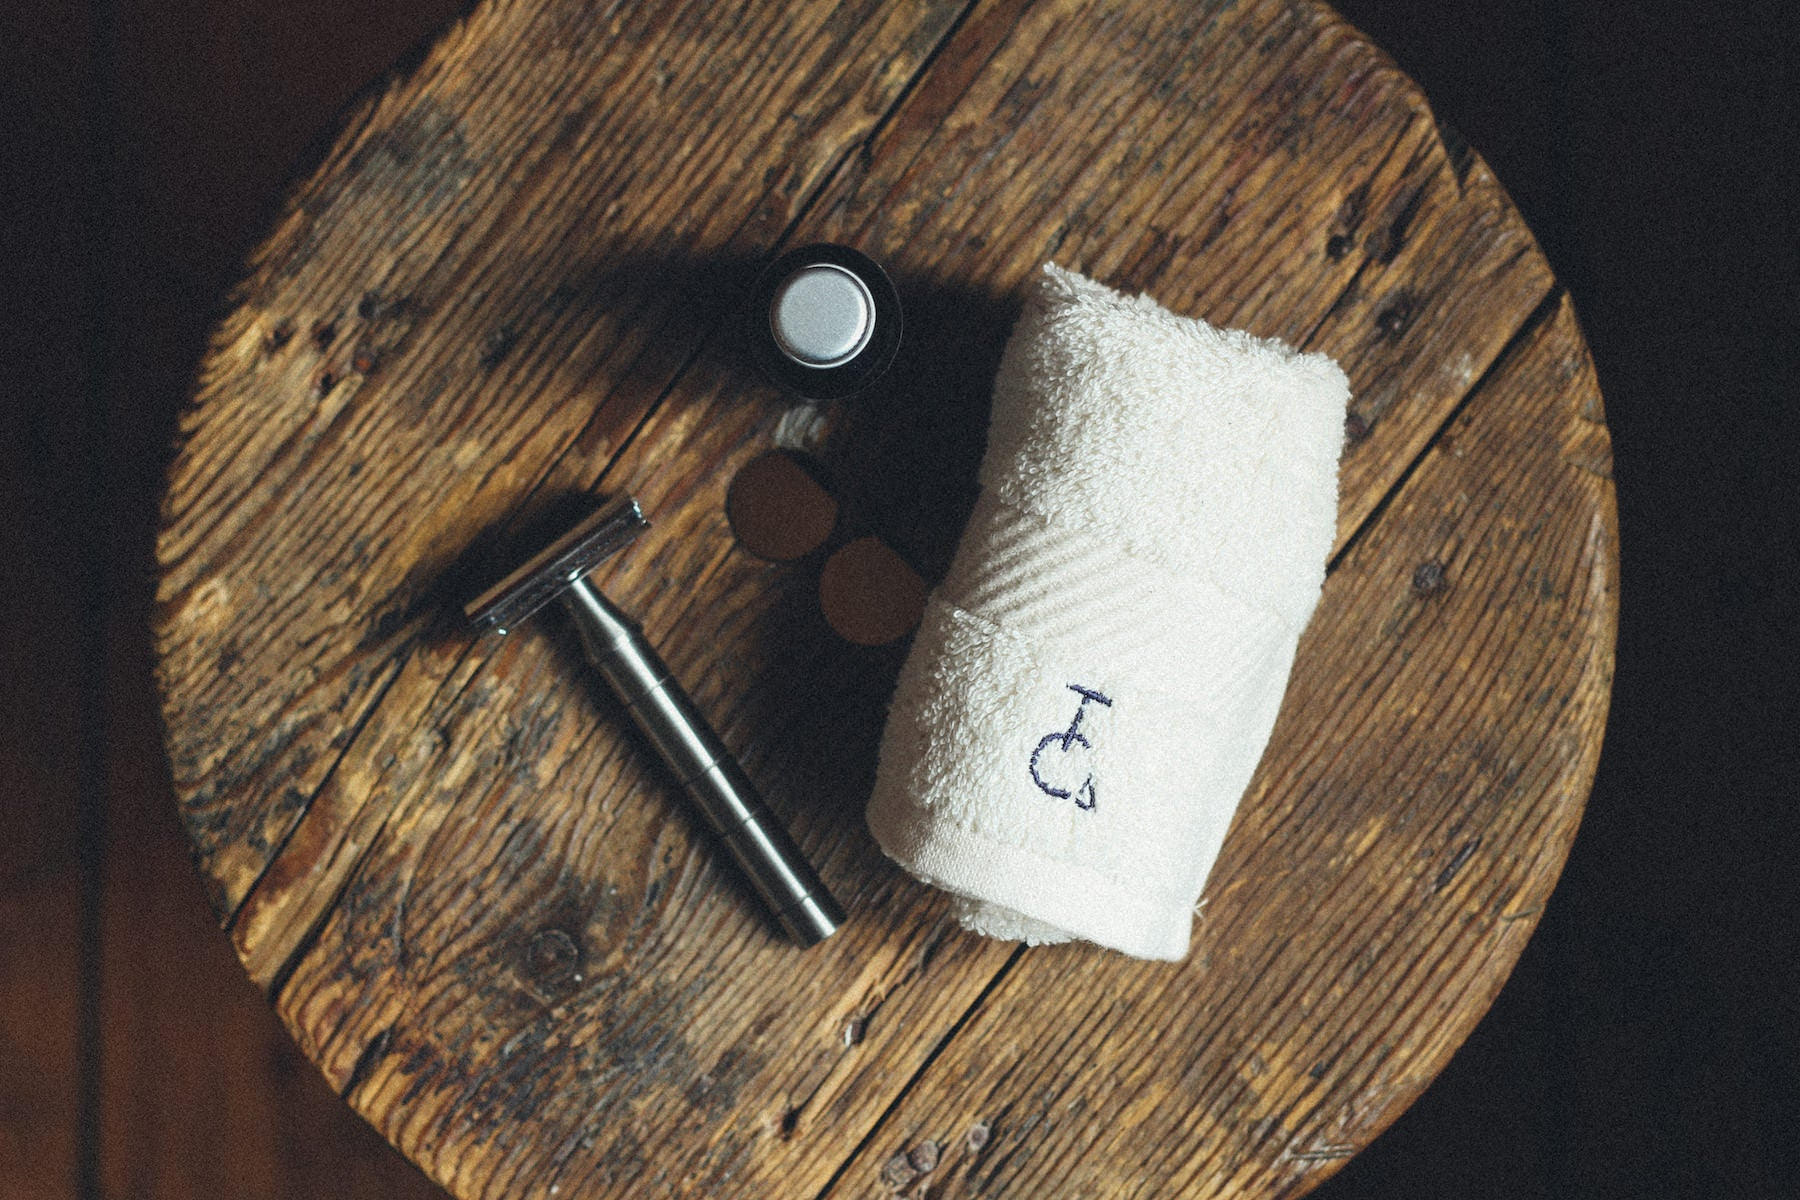 Handle crafted in Britain by Nigel with a head chromed and cast in Delhi. Luxury organic shave oil developed and made in the UK. Premium organic cotton flannel embroidered in Devon, England.